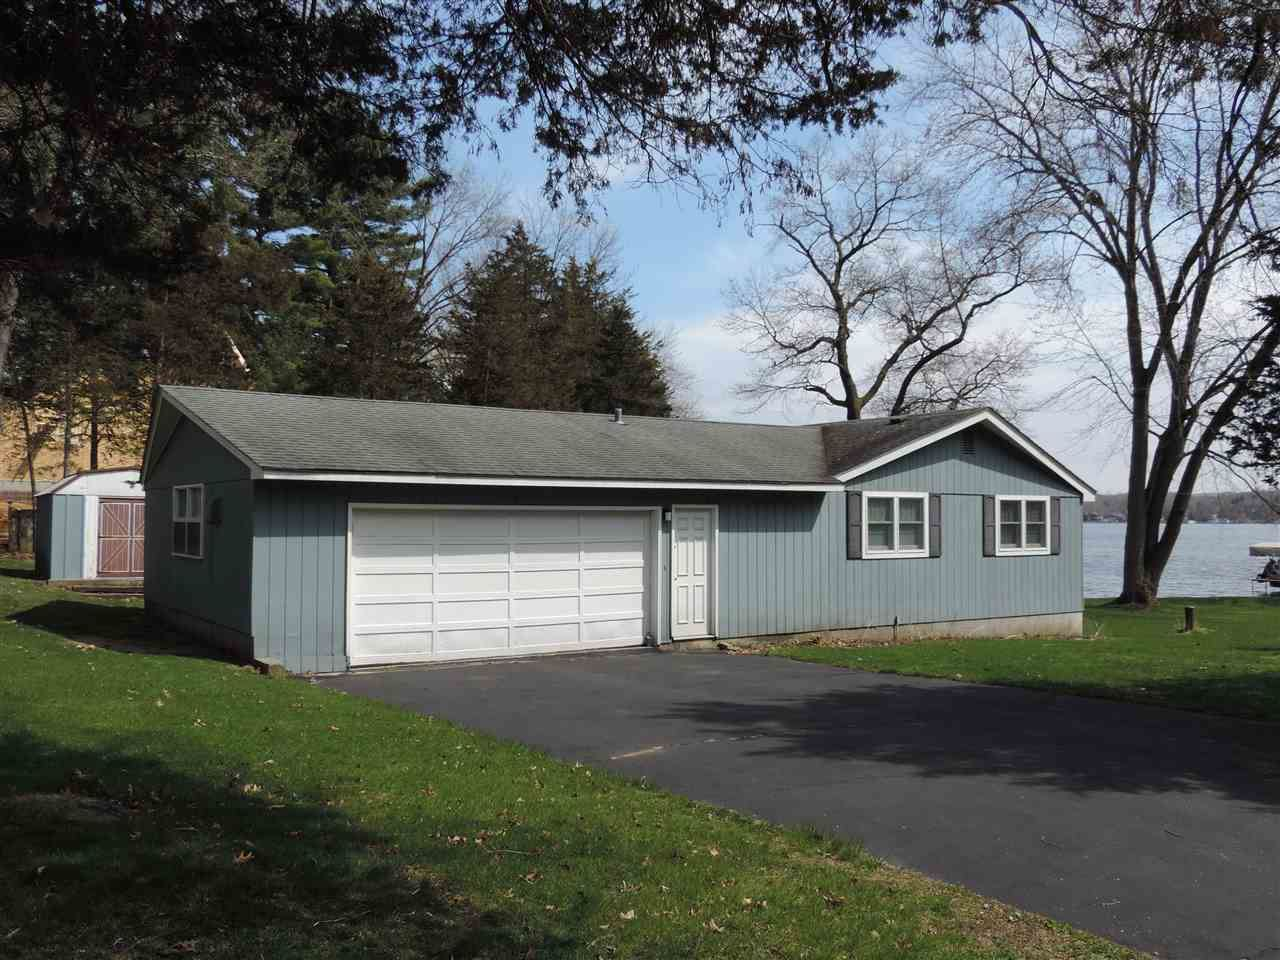 S7708 Grandview Ave, Merrimac, WI 53561 - MLS#: 1875499